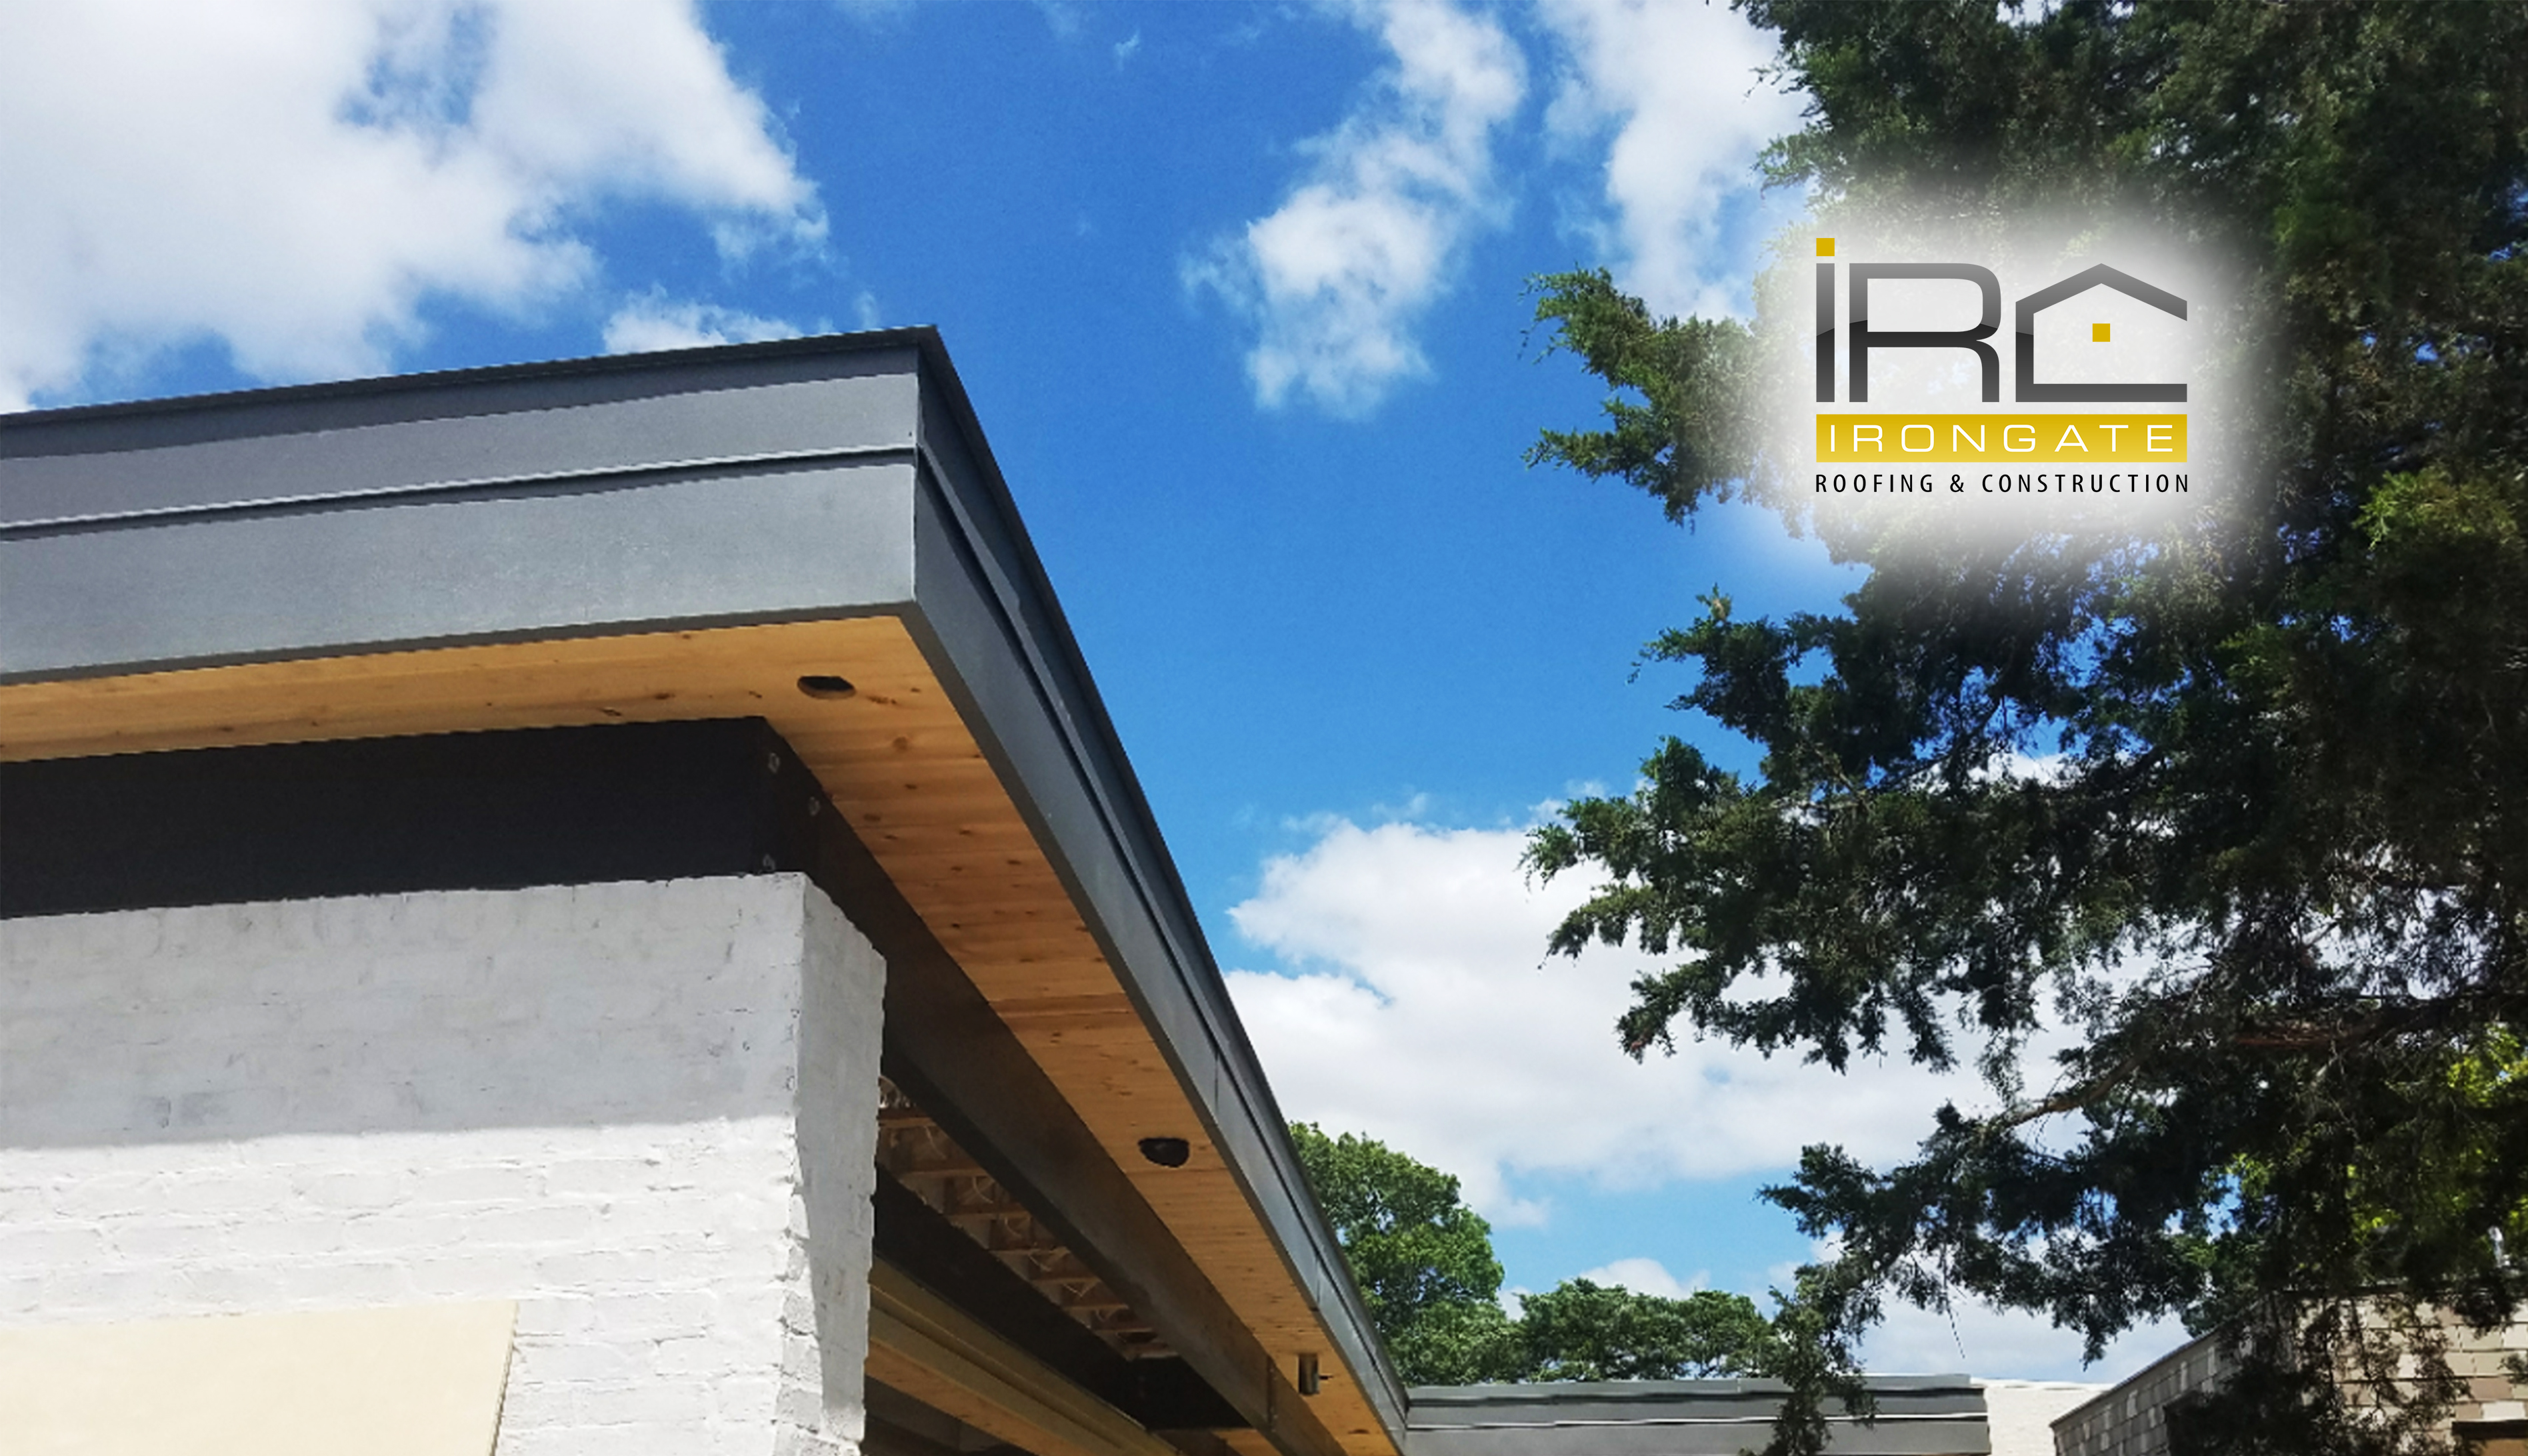 irongate roofing company